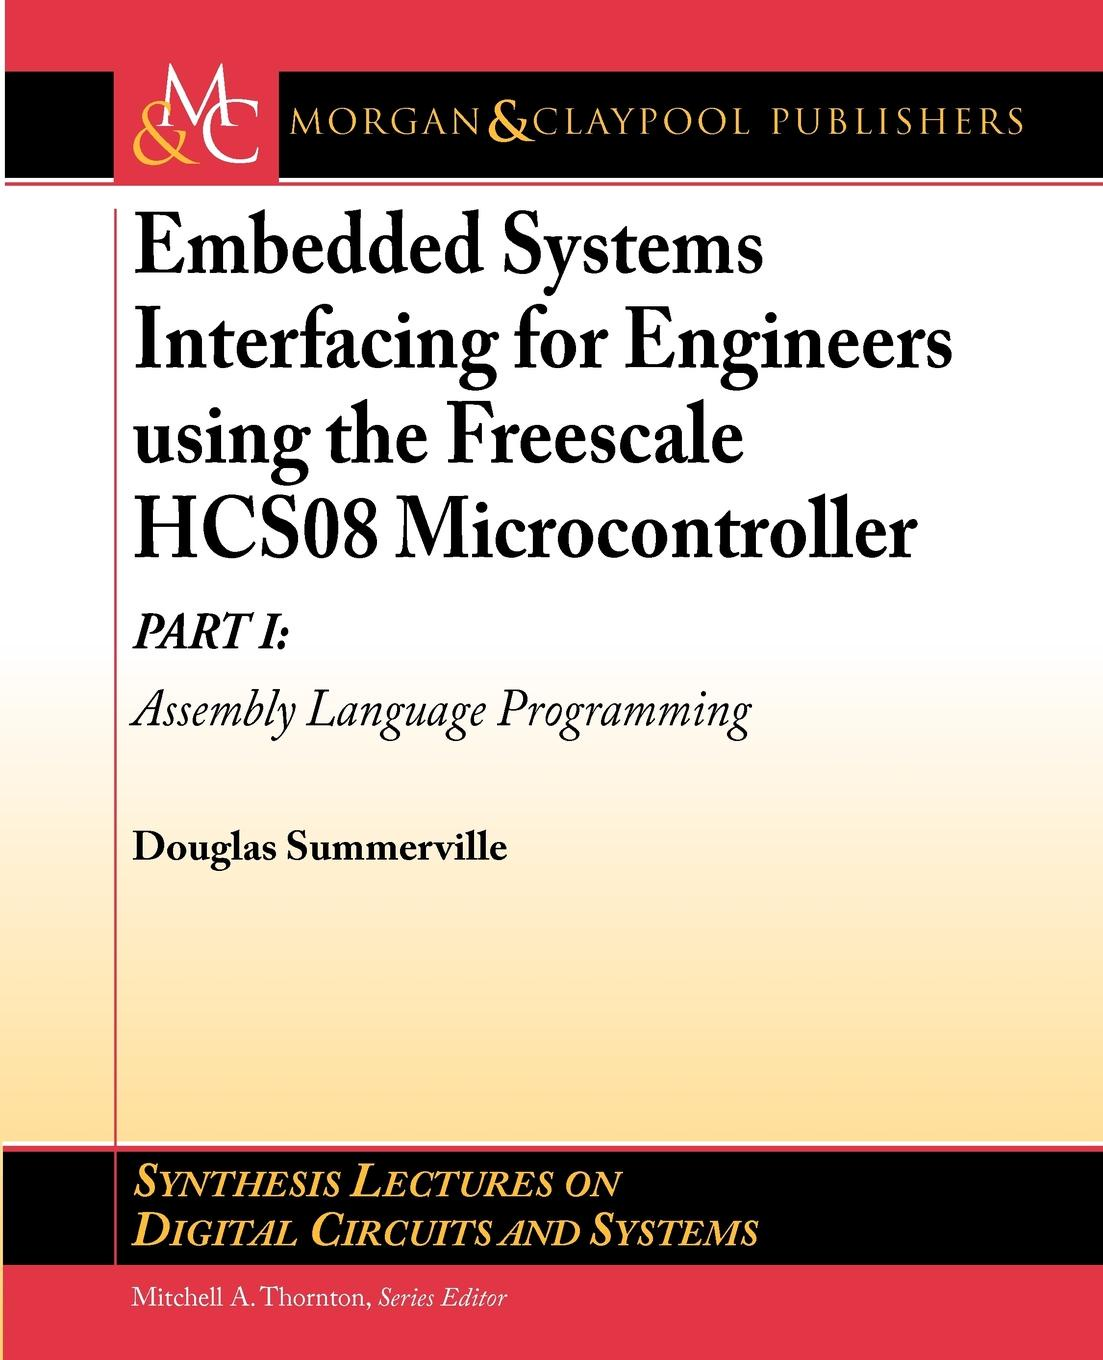 Douglas Summerville Embedded Systems Interfacing for Engineers using the Freescale HCS08 Microcontroller I. Assembly Language Programming fred eady implementing 802 11 with microcontrollers wireless networking for embedded systems designers embedded technology